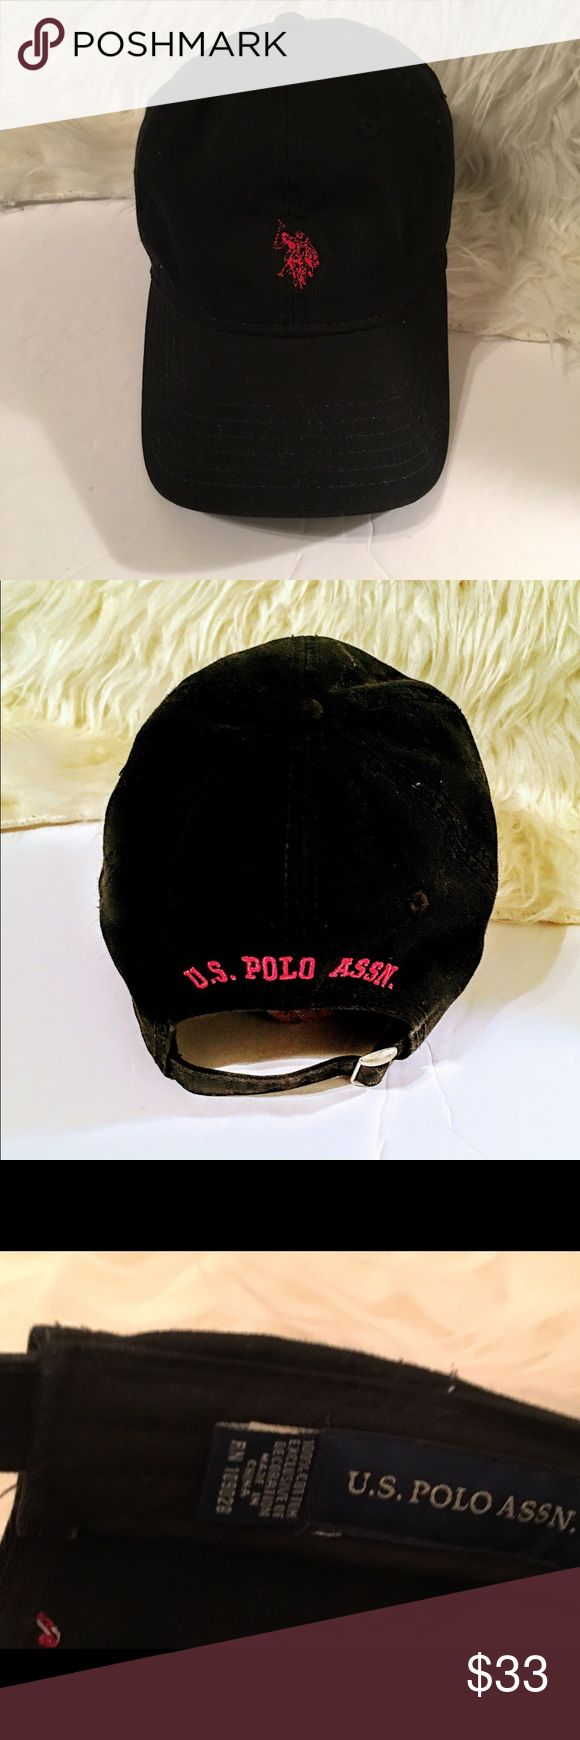 U.S. POLO ASSOCIATION HAT Men's black U.S. POLO ASSOCIATION hat adjustable to fit anyone's hat size!!! ******NOTE!!!!!******This is the US POLO ASSOCIATION BRAND*****🤠🤠🤠PLEASE OBSERVE LABEL OF AUTHENTICITY LOCATED WITHIN HATS INTERIOR AS SHOWN IN PIC🤠🤠🤠***** U.S. Polo Assn. Accessories Hats